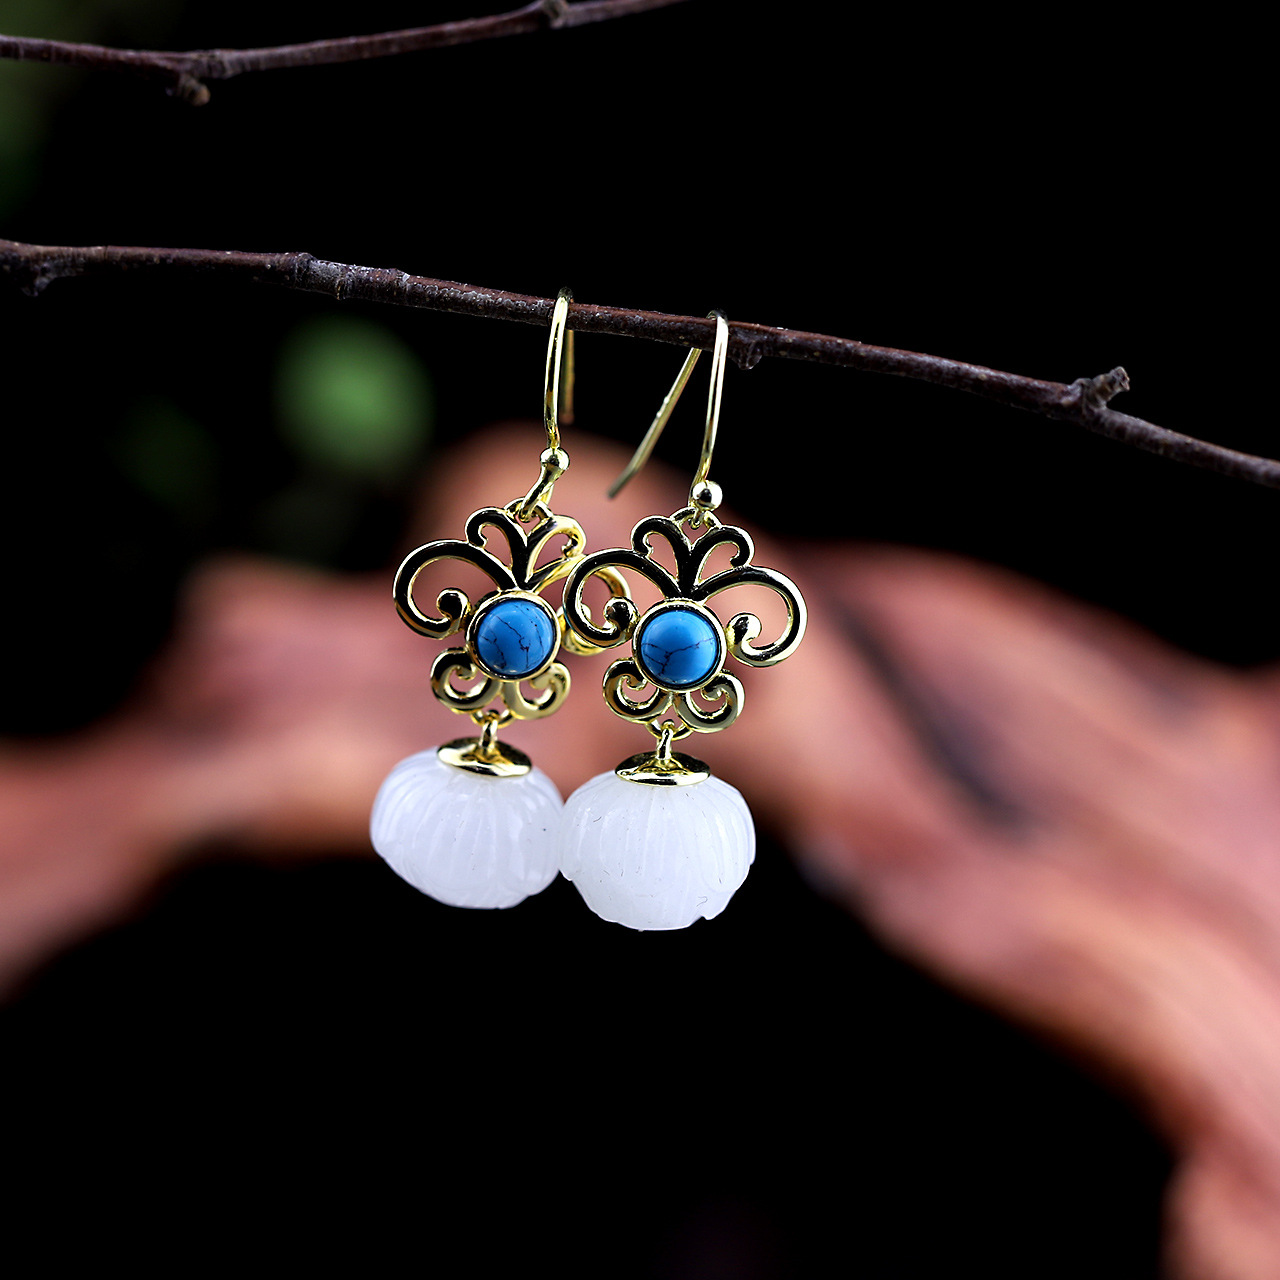 Silver, S925, Pure Silver Jewelry, Exquisite Earrings, Wholesale Fashion Ladies And Tian Yu Lotus Earrings. the character of silver s925 silver jewelry fashion exquisite lady earrings blue sandstone section